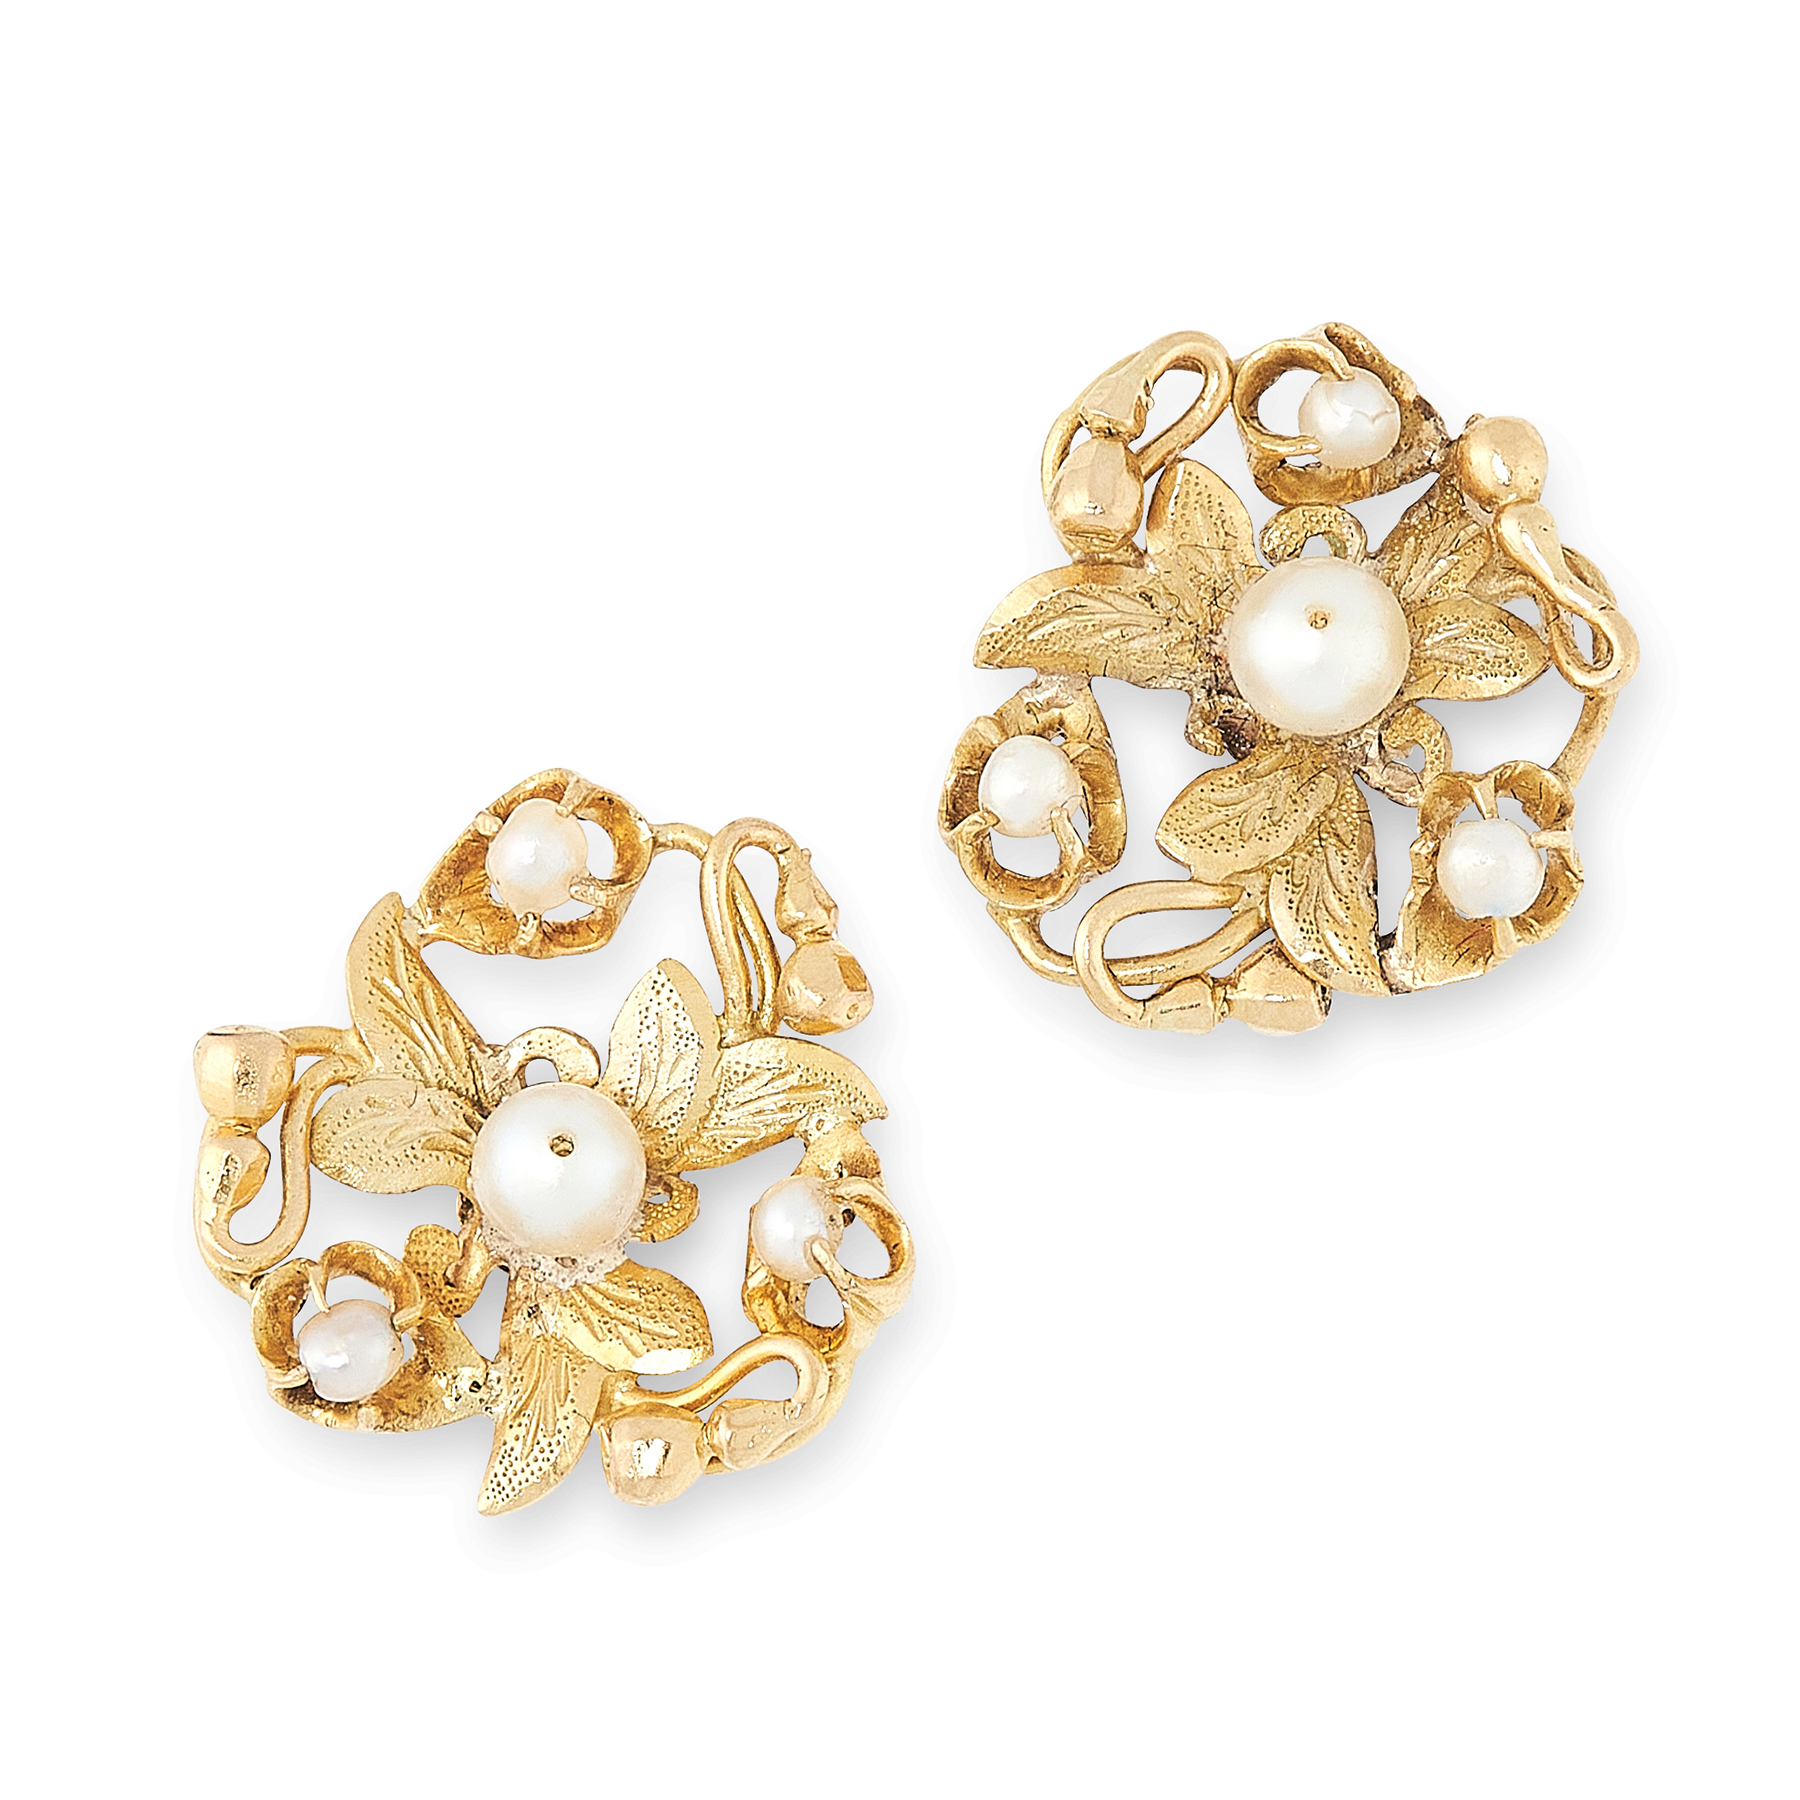 A PAIR OF PEARL STUD EARRINGS, EARLY 20TH CENTURY in high carat yellow gold, each of foliate